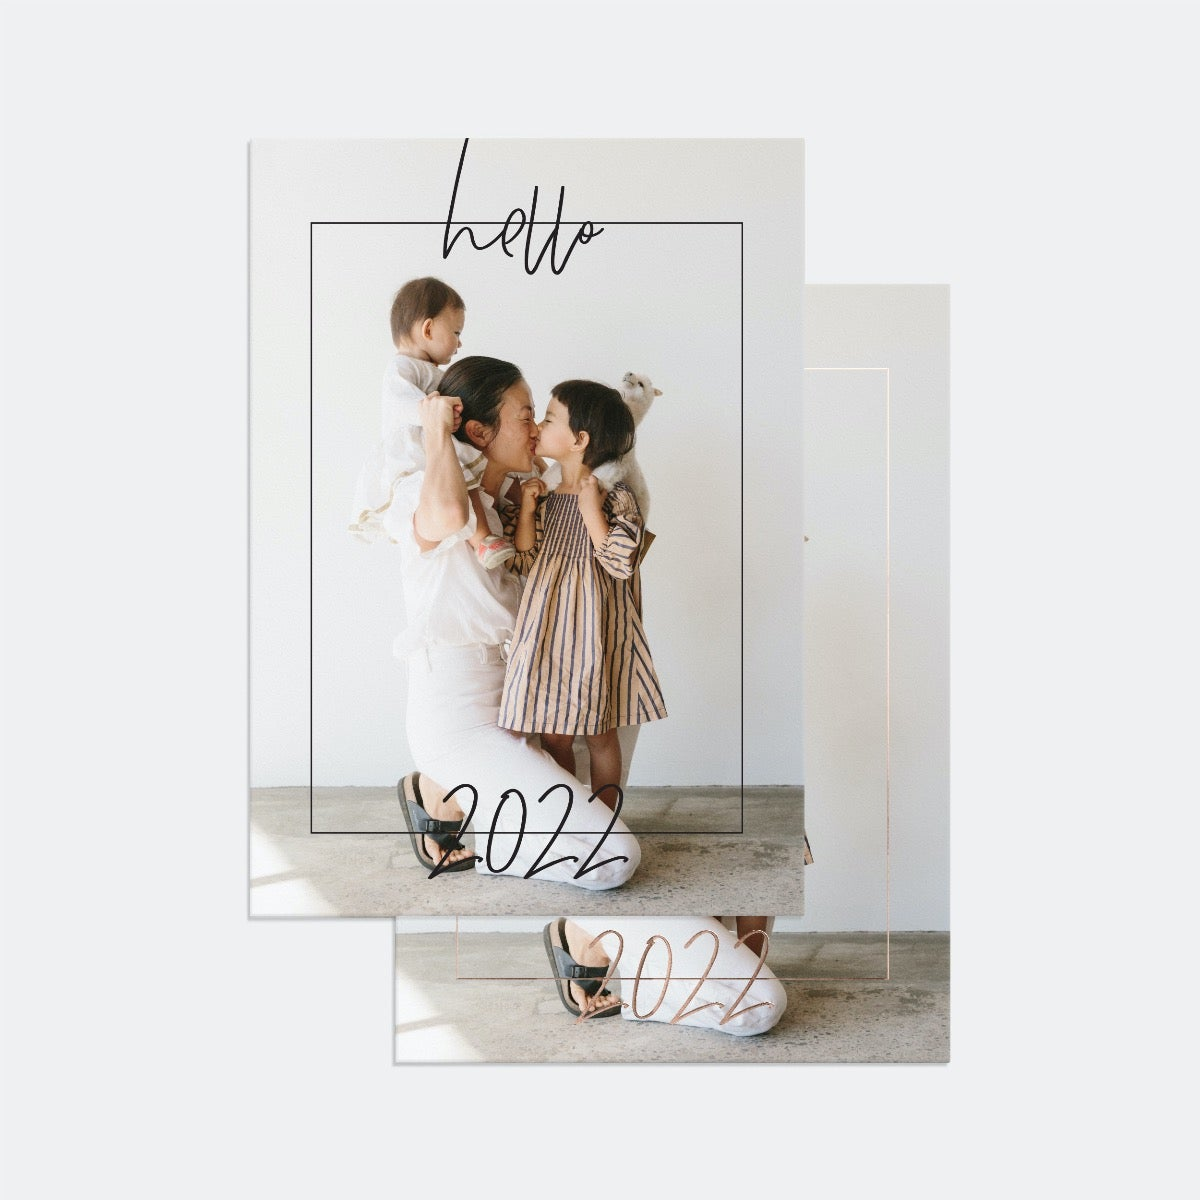 Hand-Lettered 2022 New Year Card